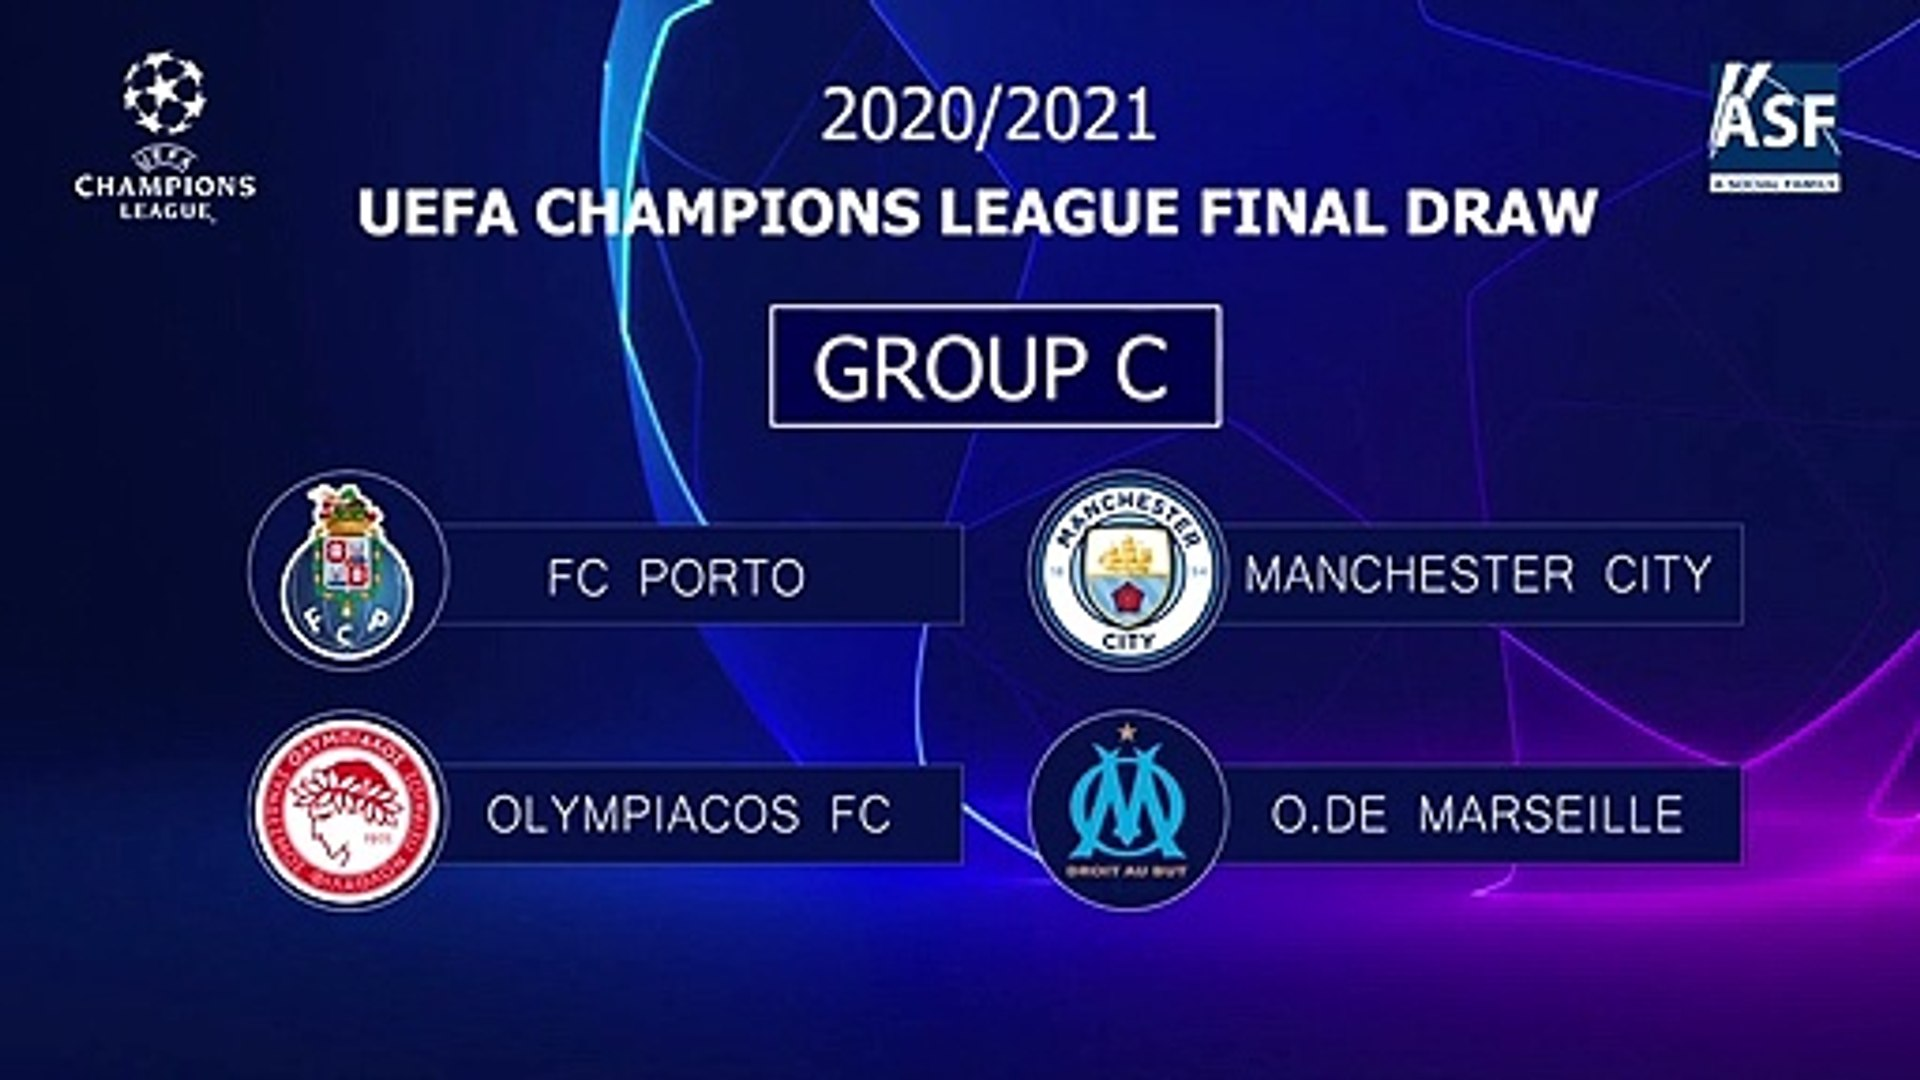 uefa champions league final draw 2020 21 uefa group stage draw champions league draw uefa draw video dailymotion uefa champions league final draw 2020 21 uefa group stage draw champions league draw uefa draw